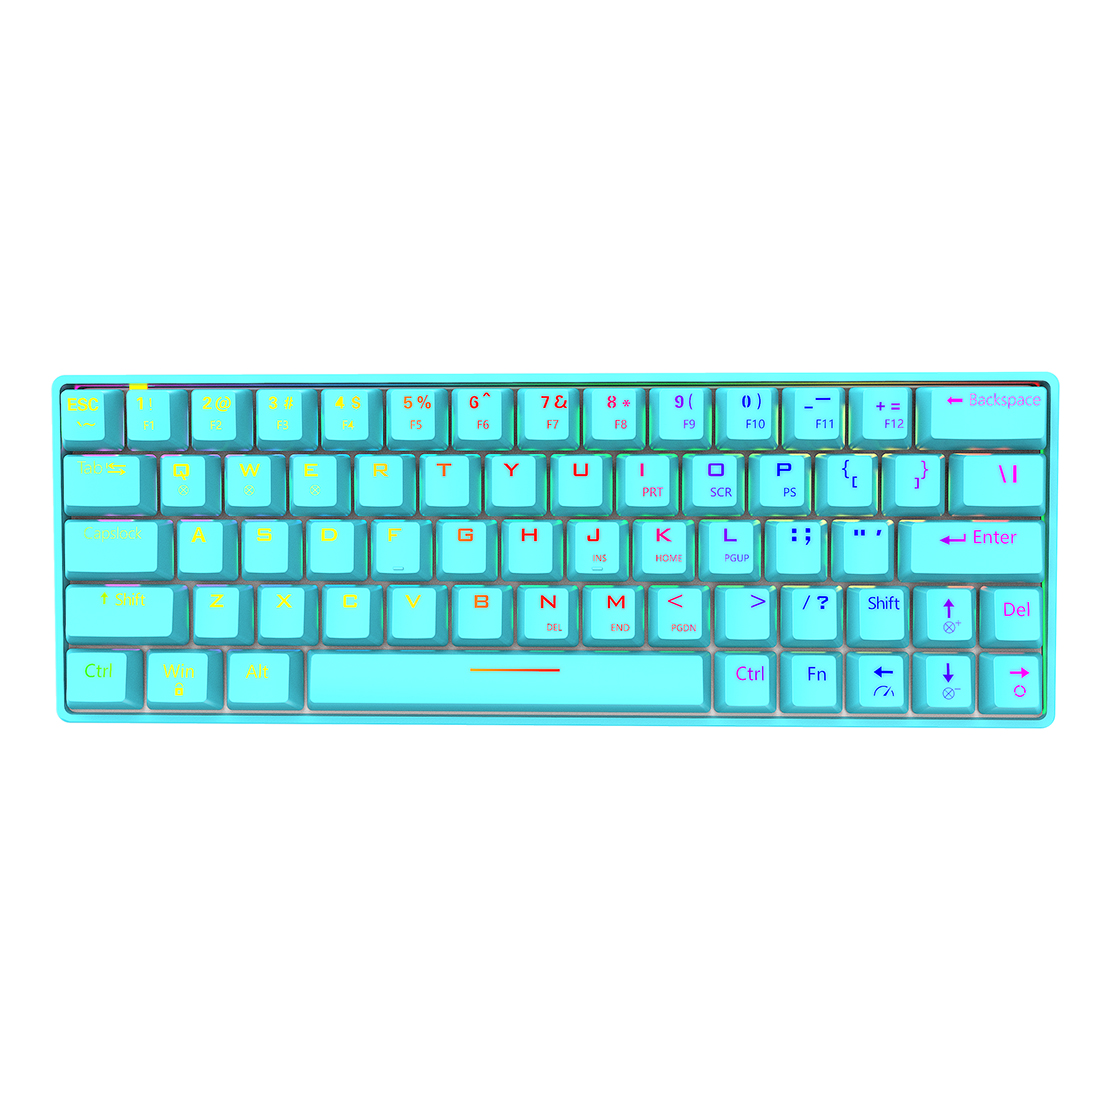 Shark64 60% Mechanical Keyboard 64-Key Bluetooth Wired Dual Mode RGB Backlight Gaming Keyboard